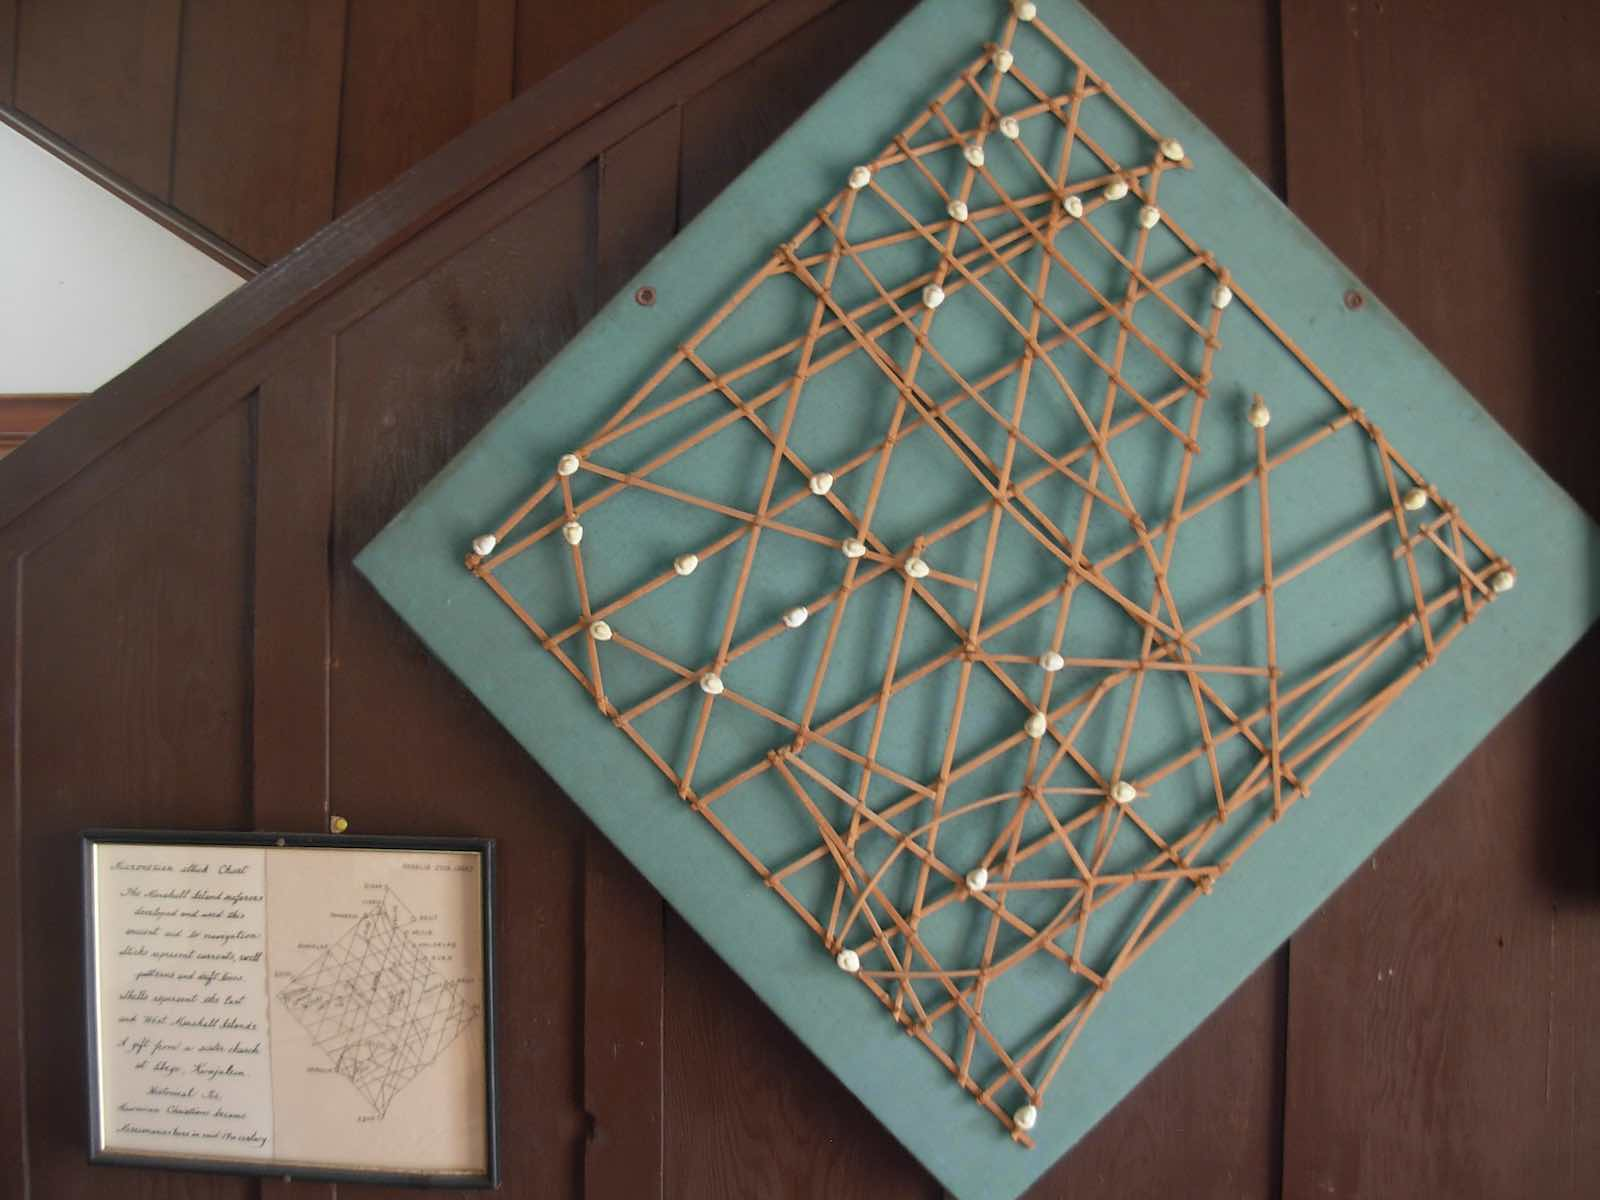 A Micronesian stick chart from Marshall Islands, which ancient seafarers developed and used to aid navigation. Sticks represent currents, swell patterns and drift lines, while shells represent the islands (brewbooks/Flickr)